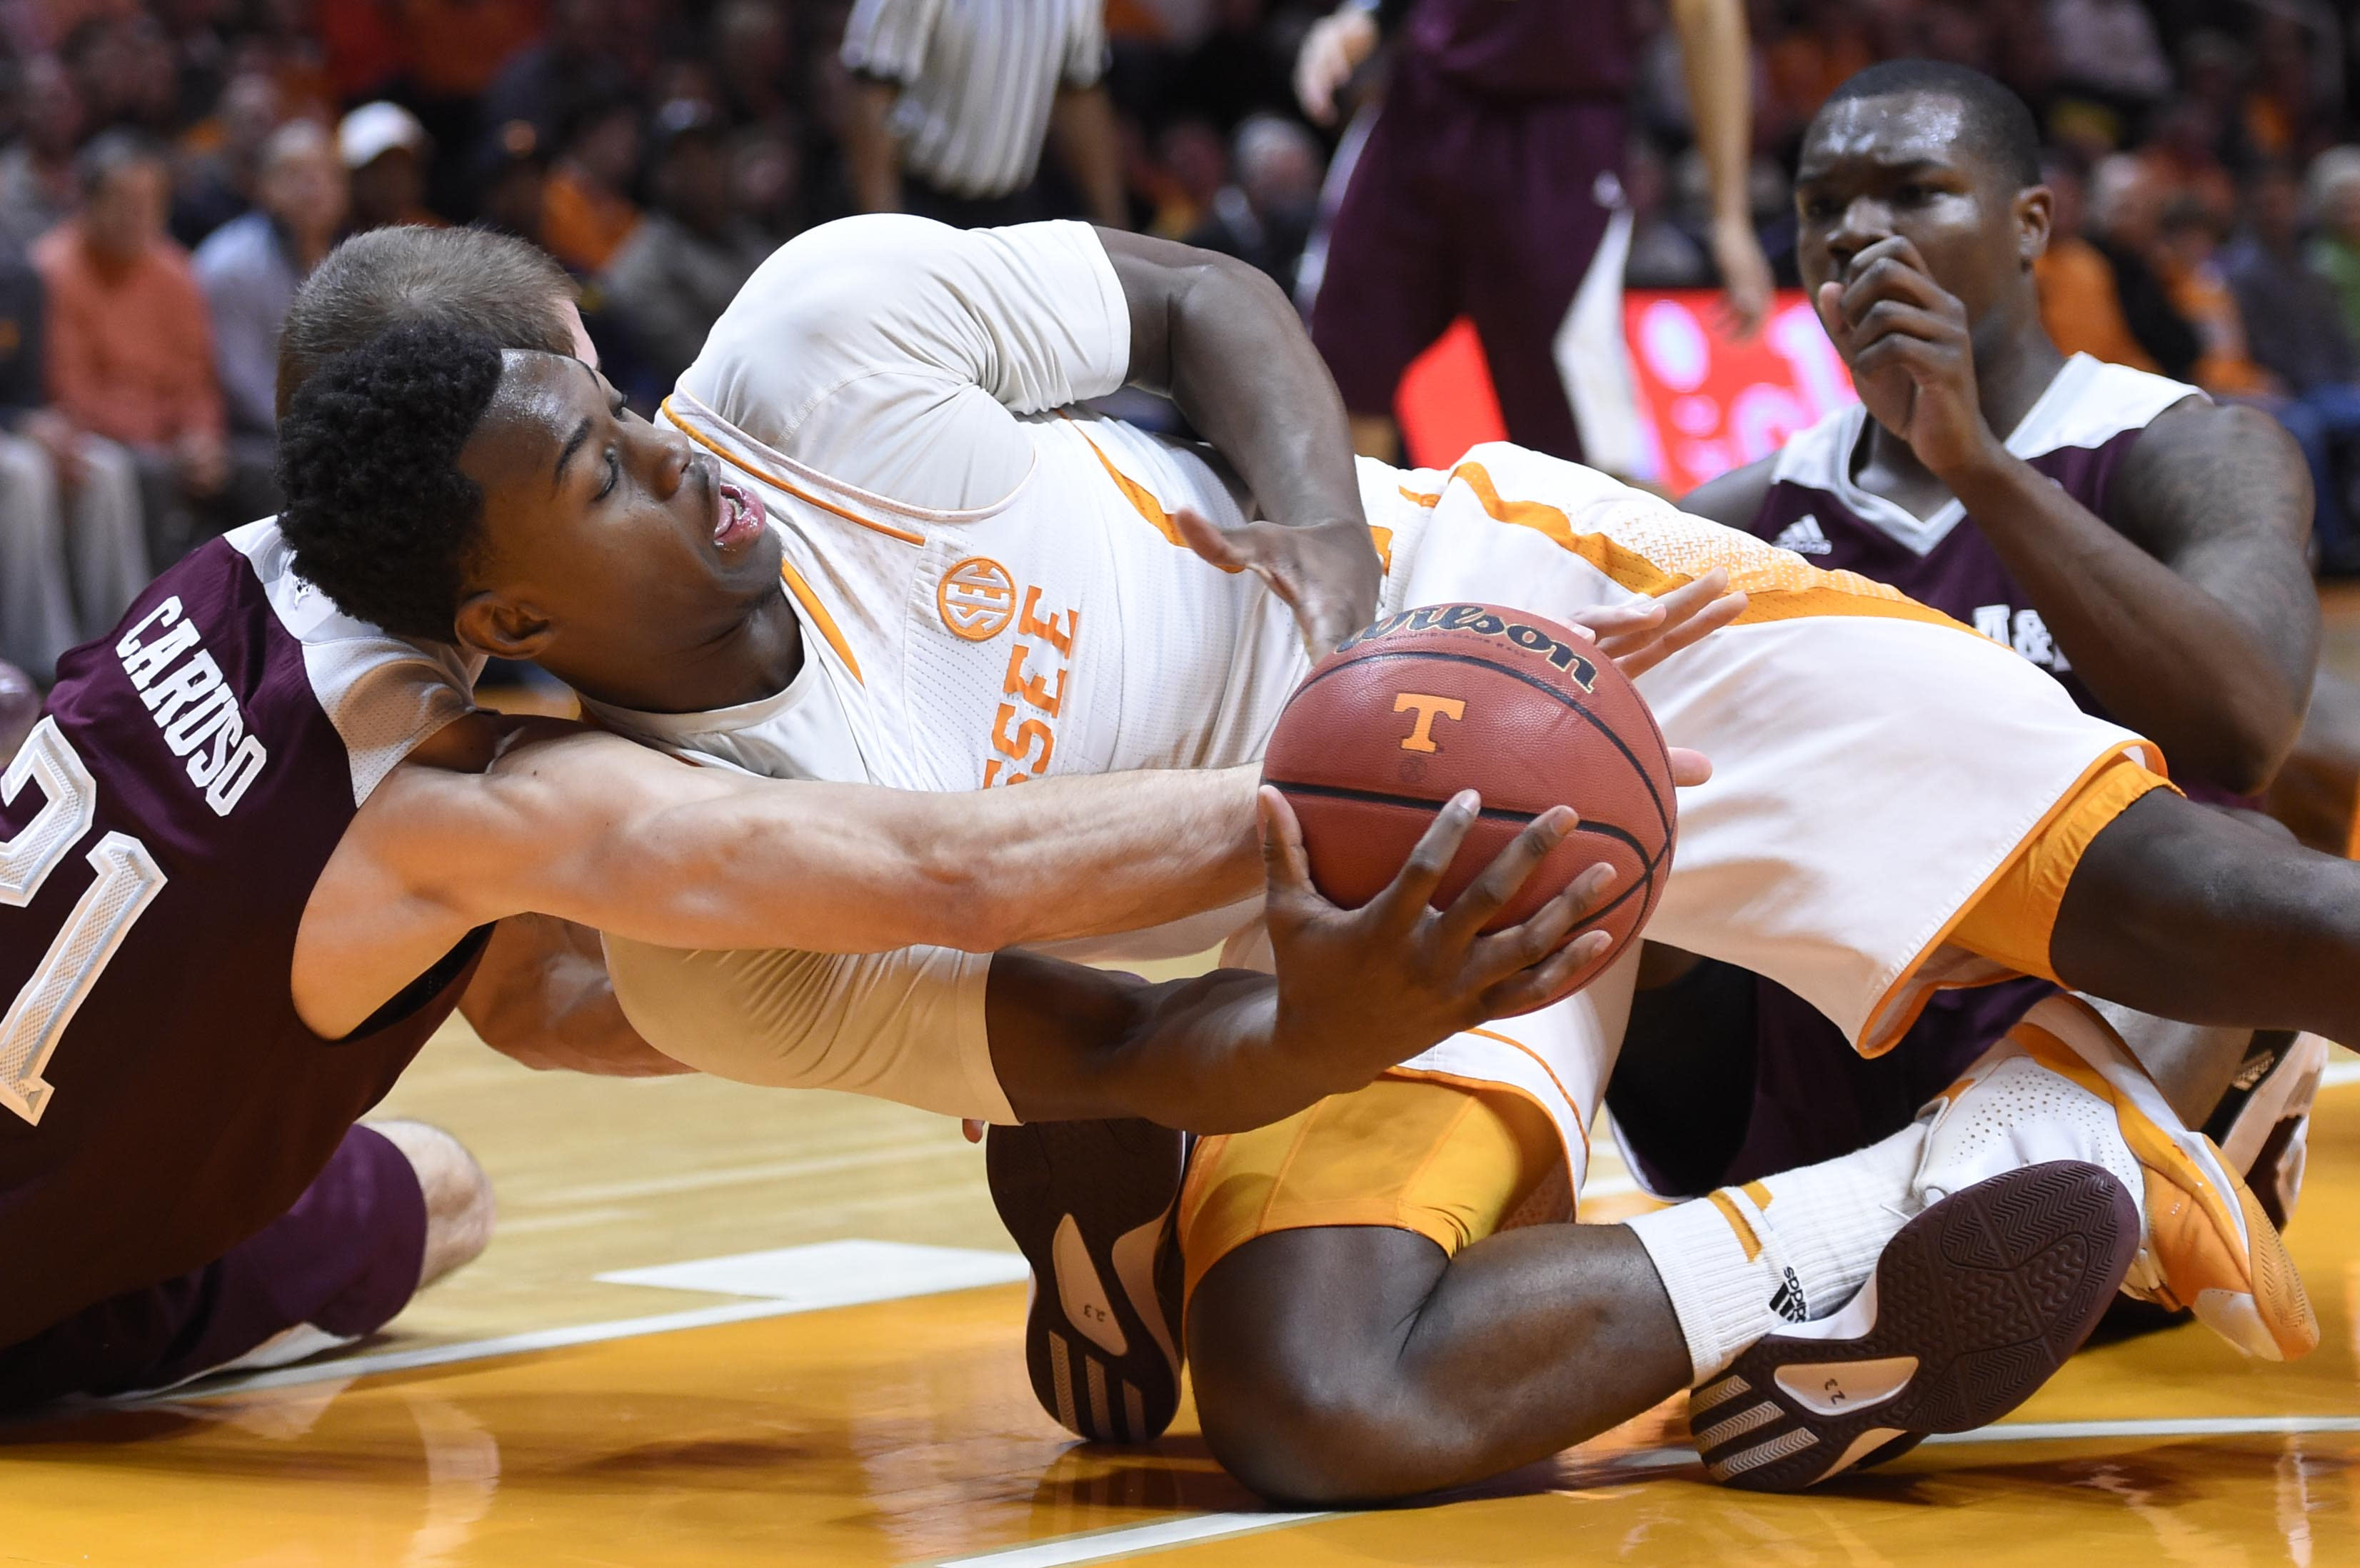 Tennessee faring better away from home thus far in SEC play